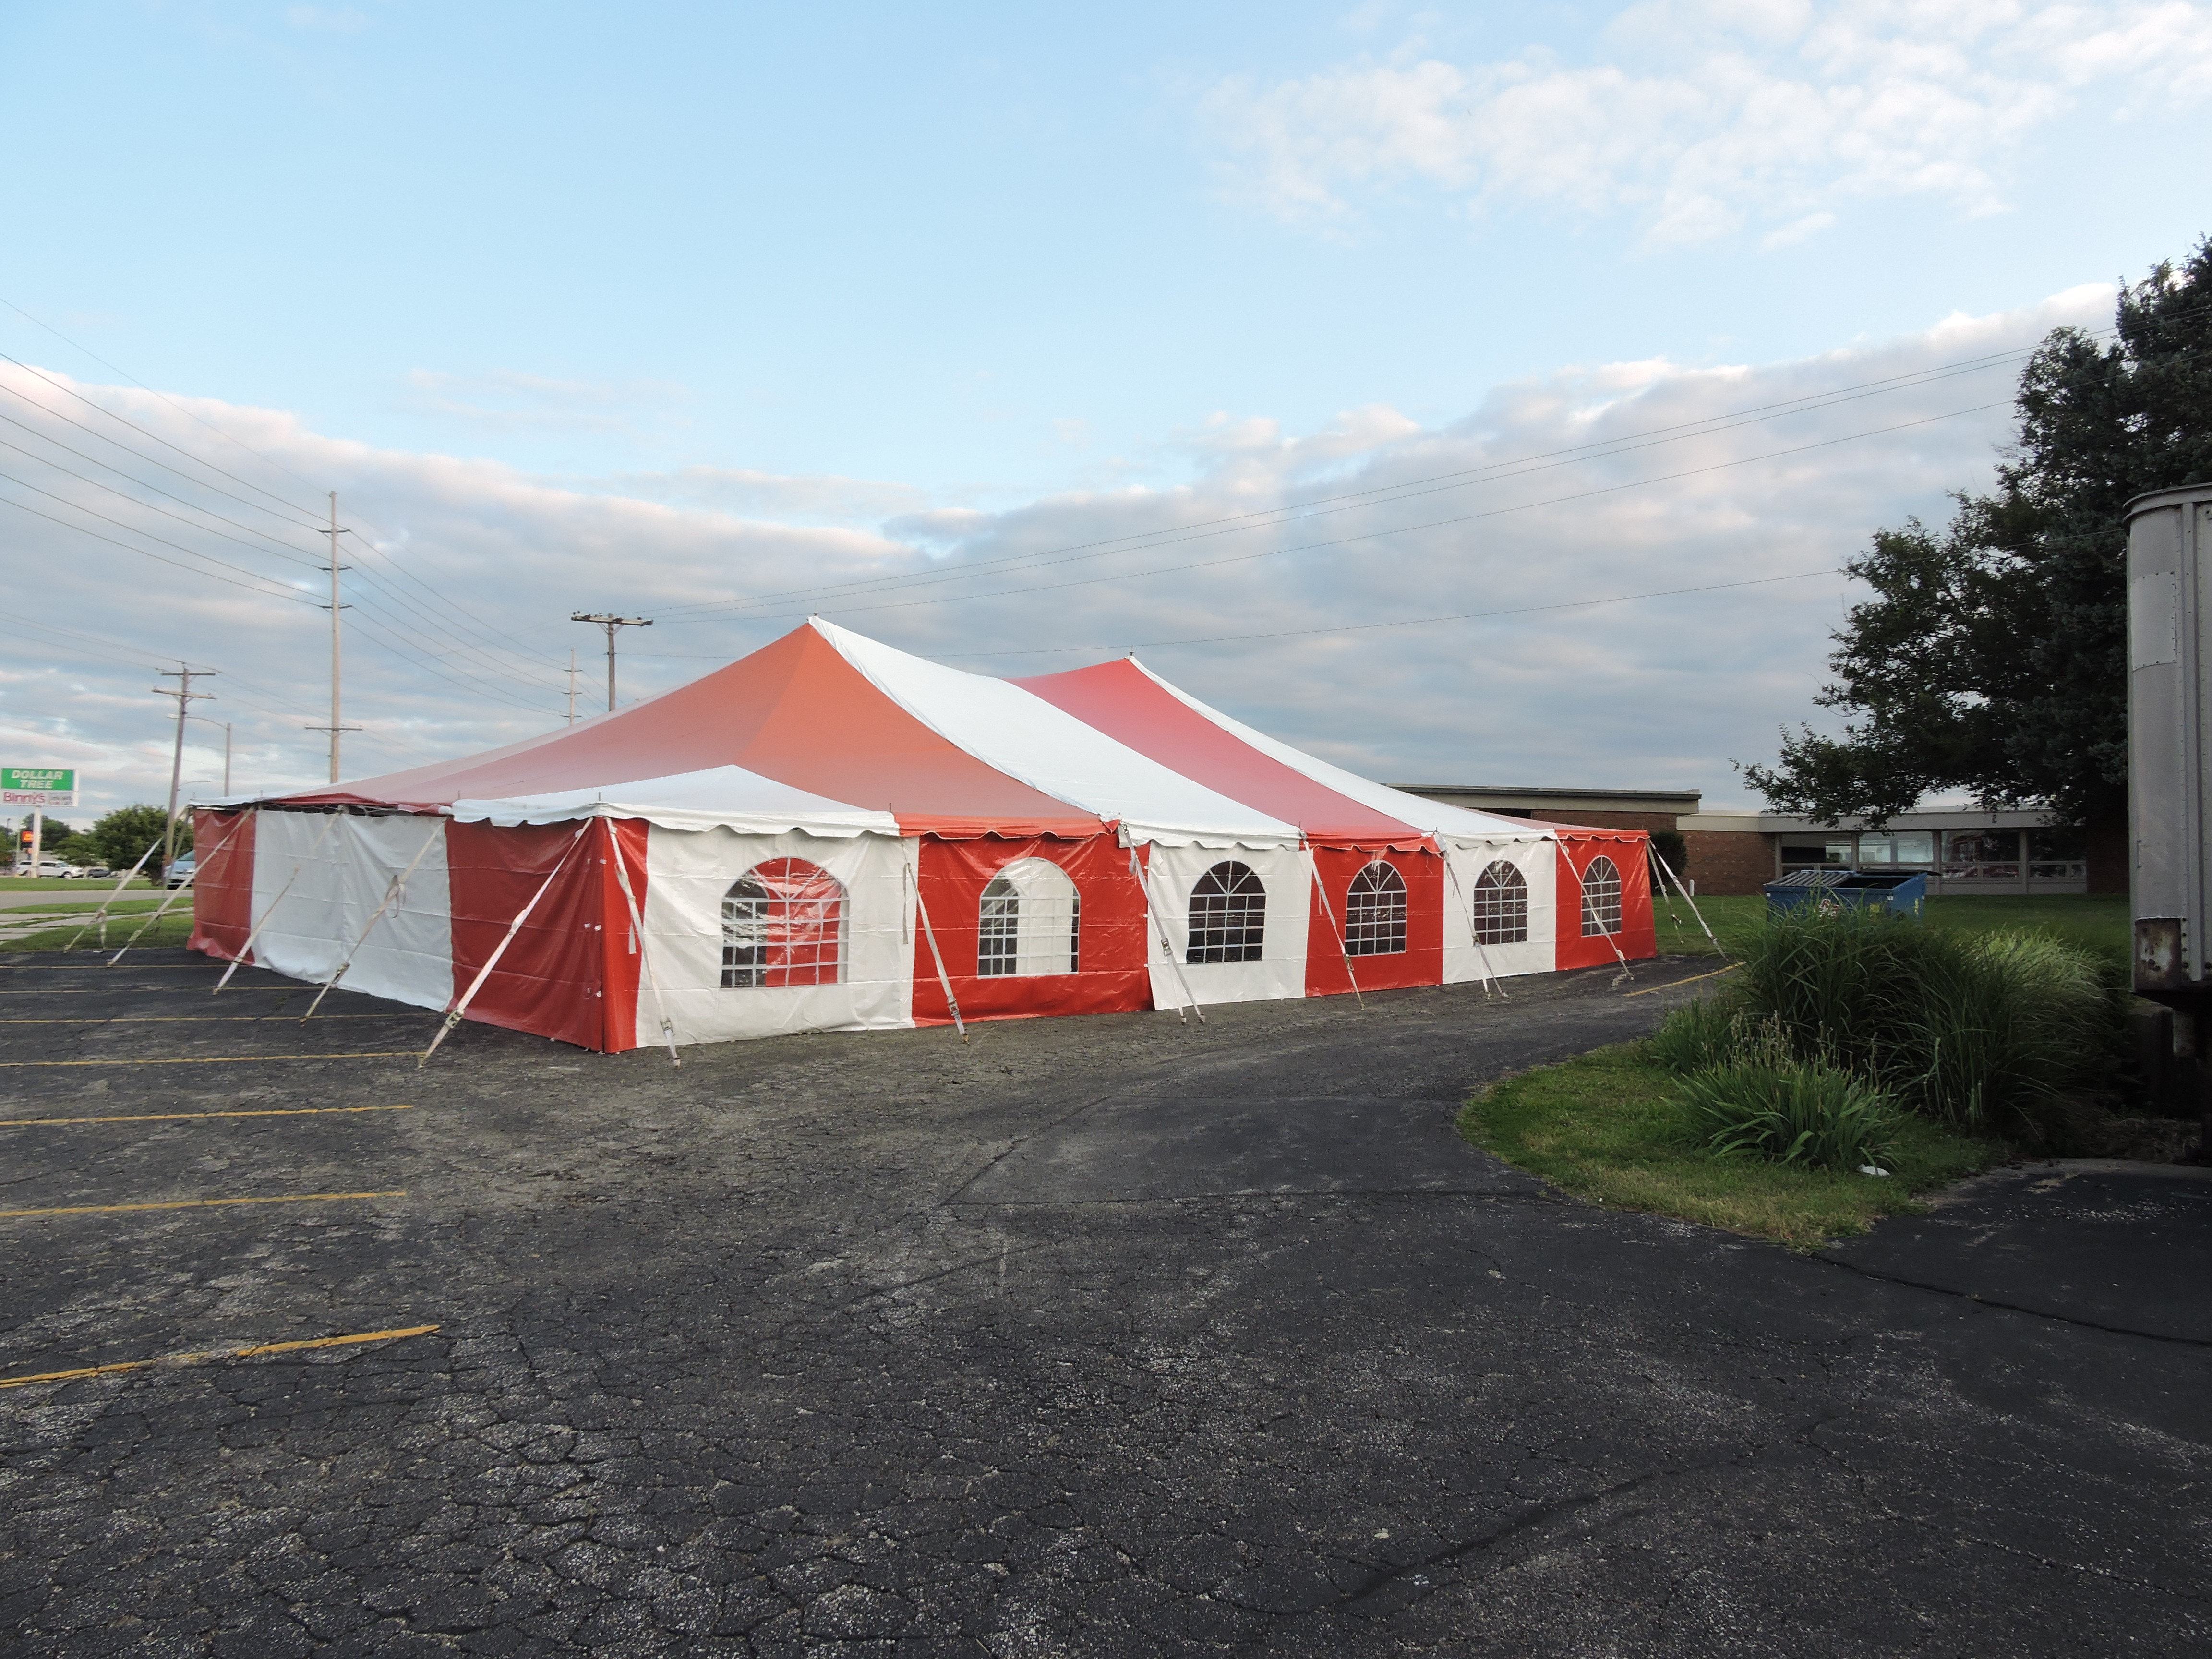 40x60 Red and White Pole Tent